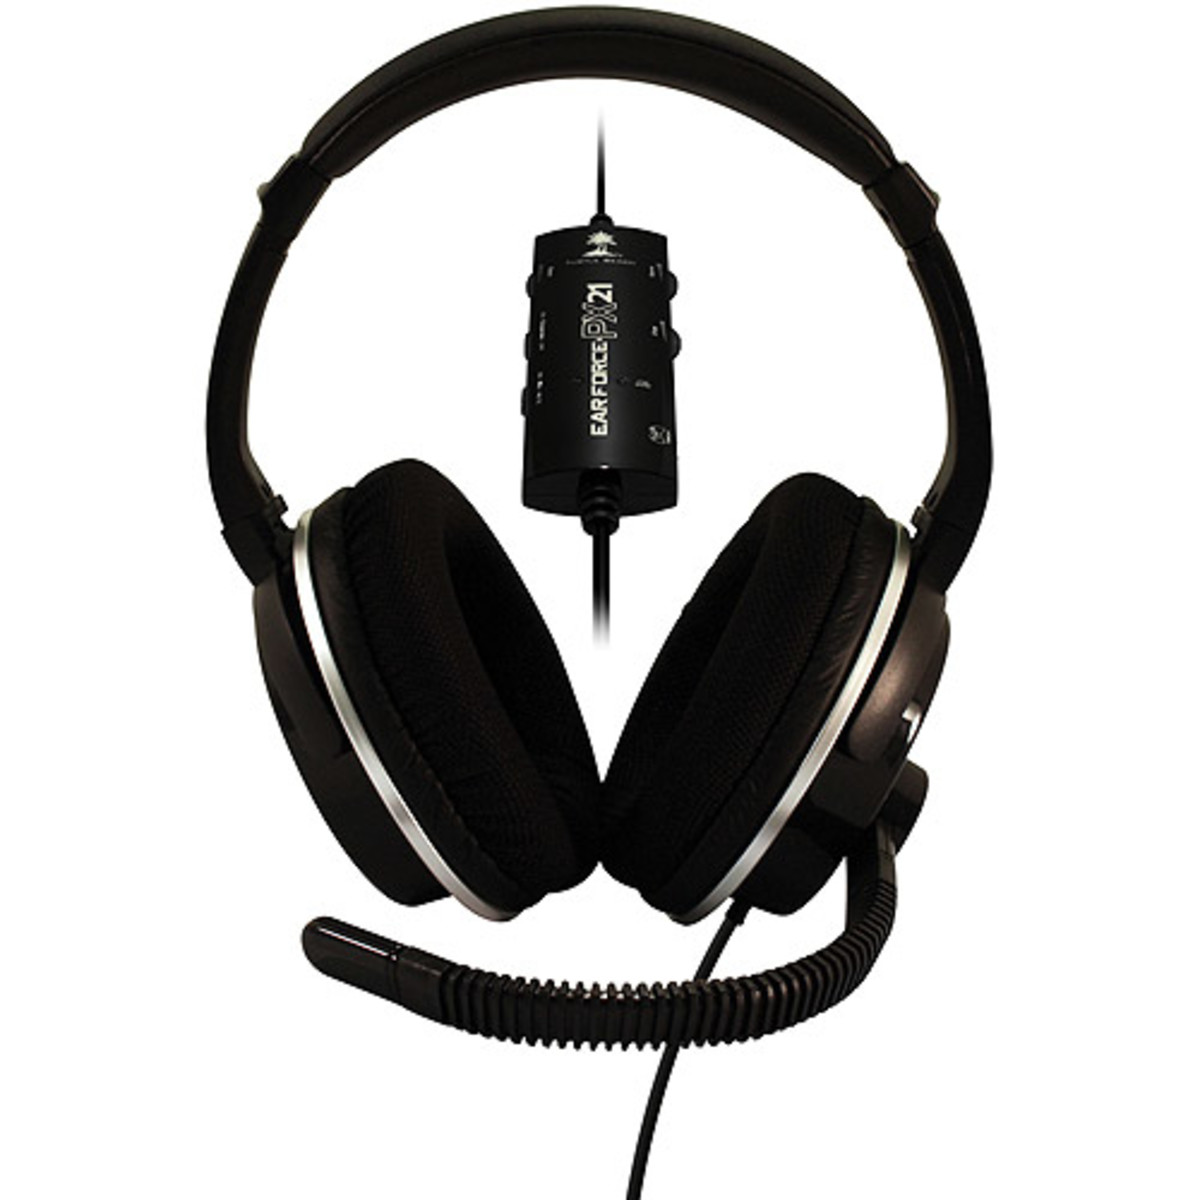 The Turtle Beach Ear Force PX21 headset can be used with the PS3, Xbox 360 or a PC.